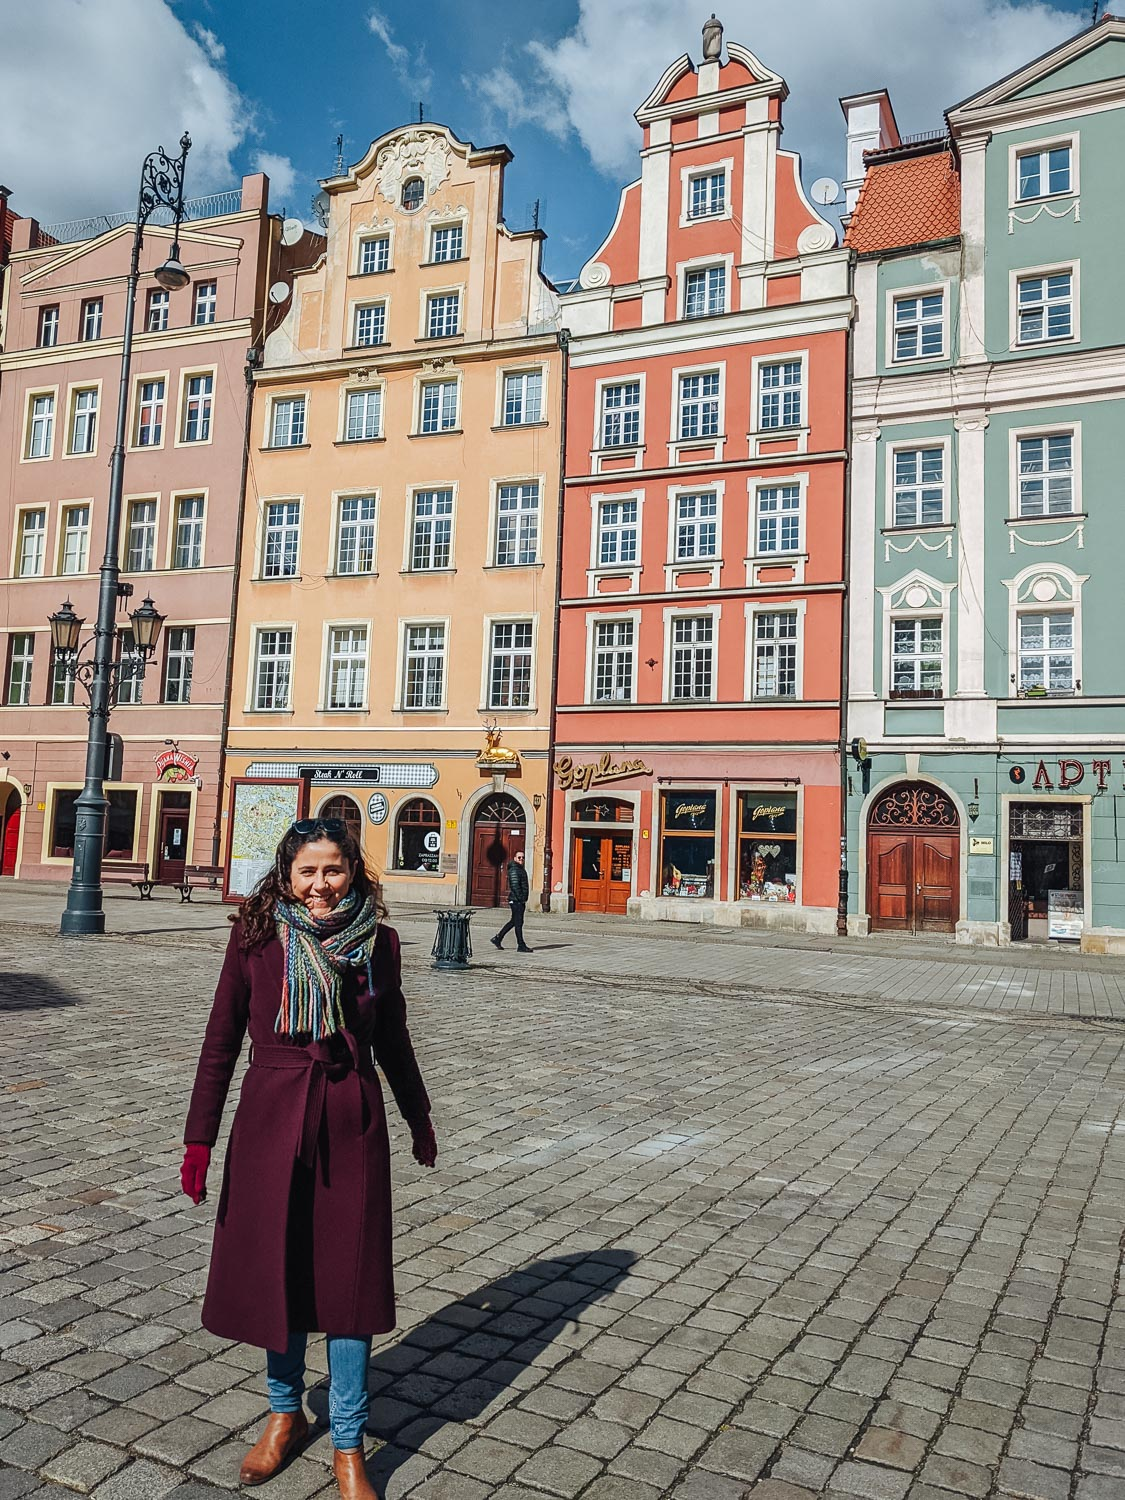 A visit to Rynek Old Market Square in Wroclaw, Poland